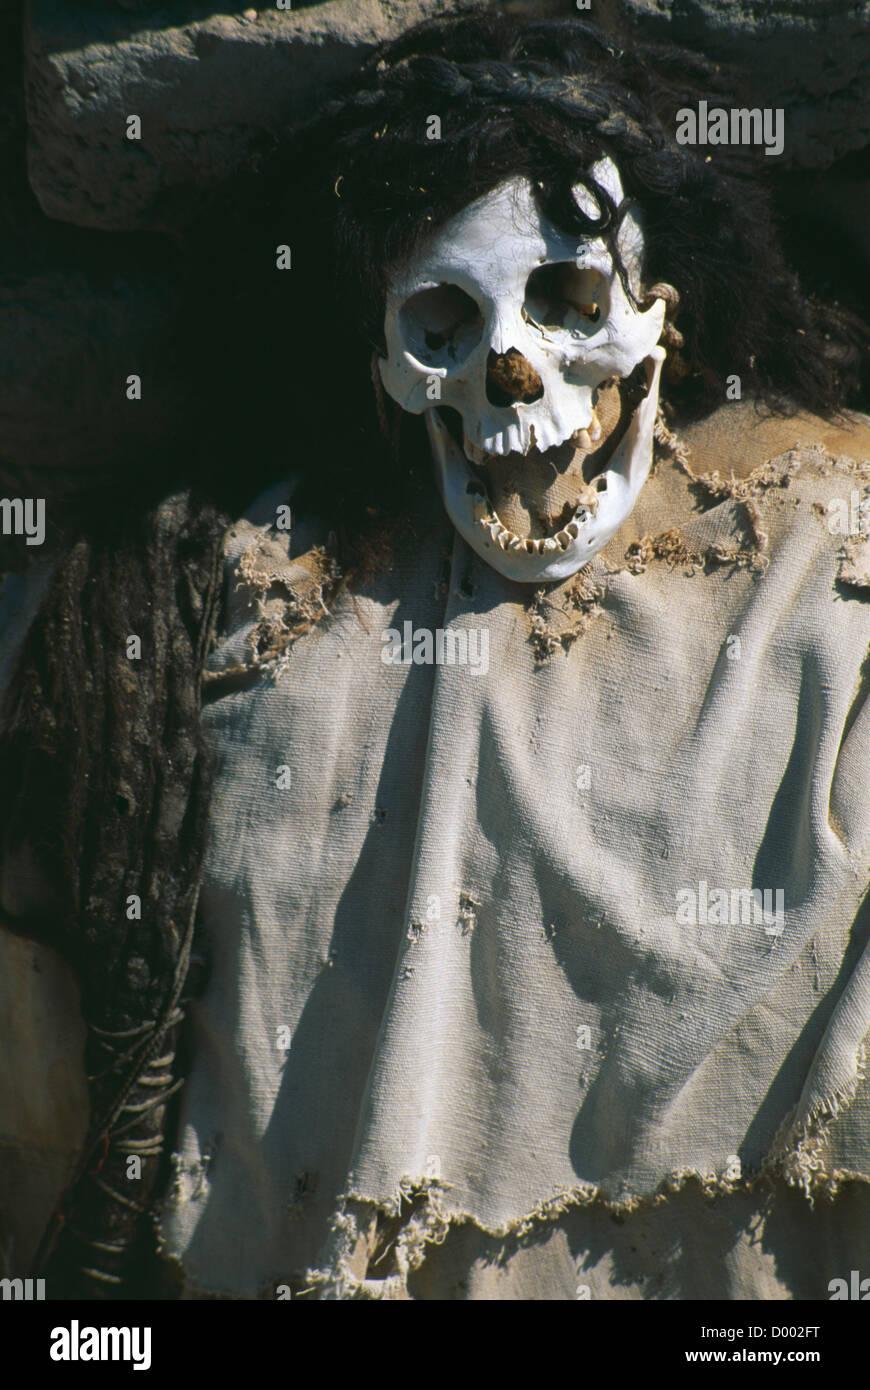 PERU, Ica Administrative Division, Mummified body in a Nazca cemetery. - Stock Image